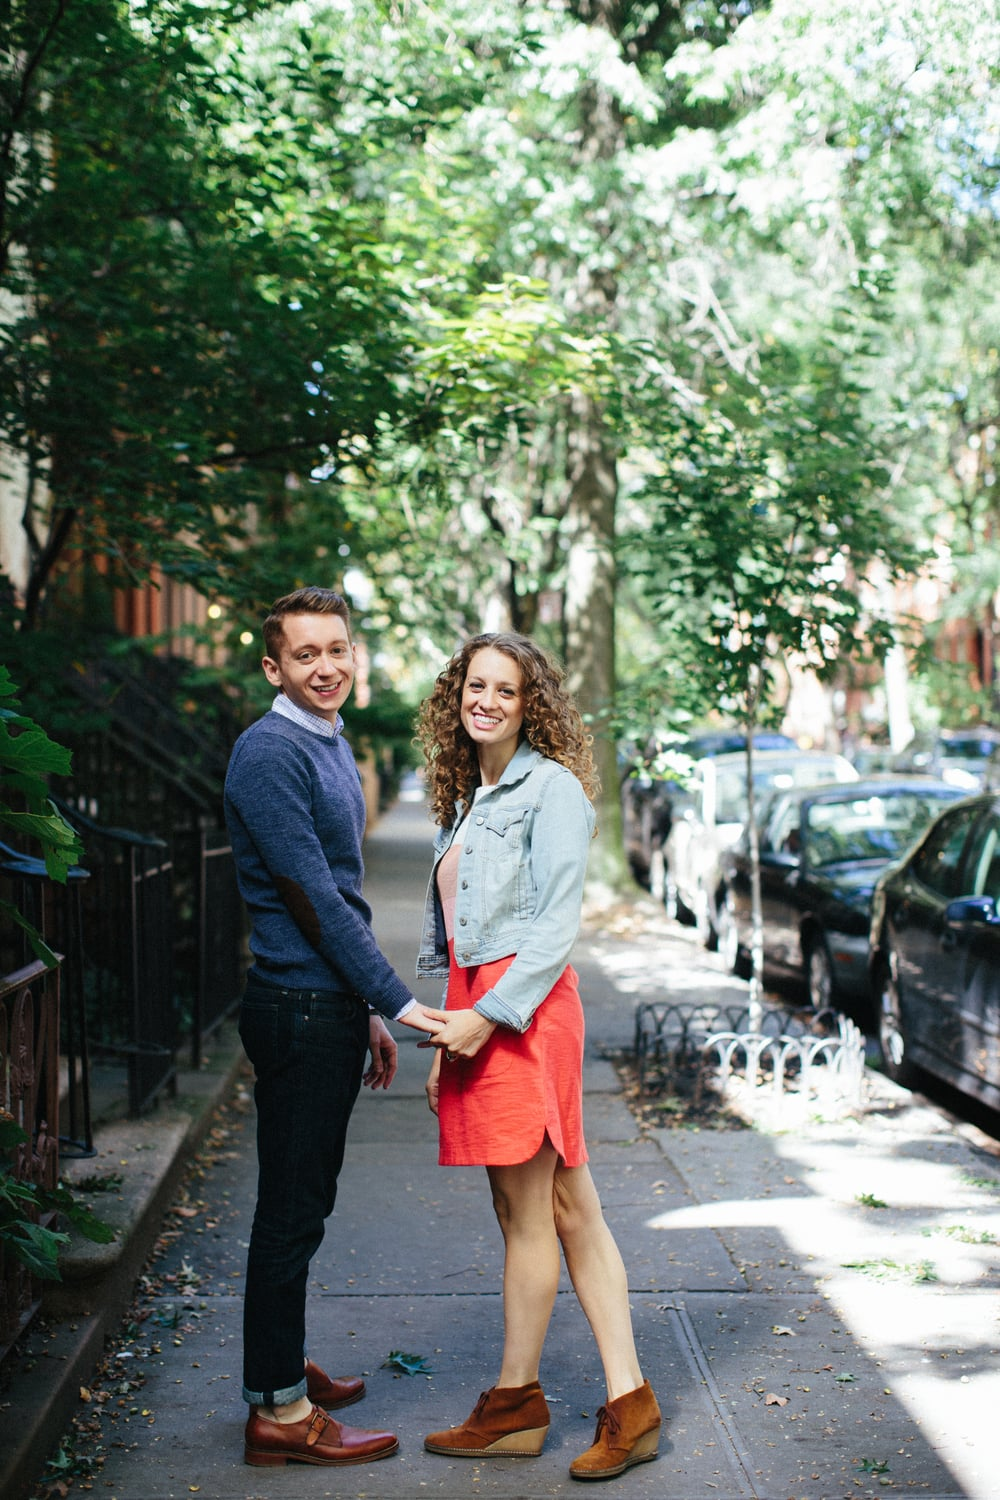 Paige-Newton-Photography-Couple-Portraits-NYC-Engagement.jpg